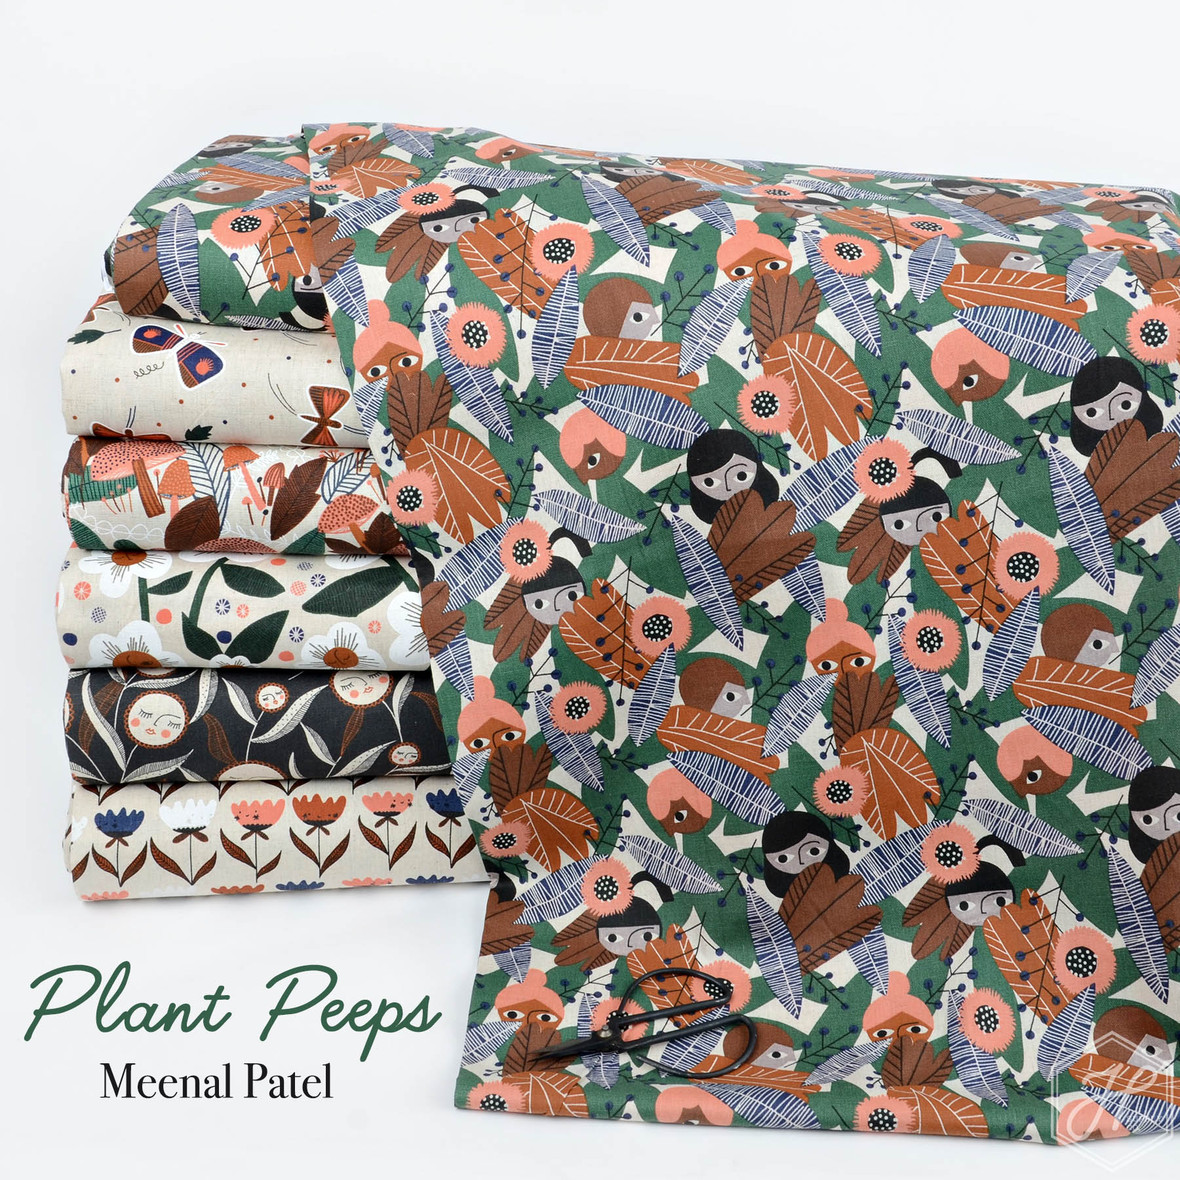 Plant Peeps Fabric Meenal Patel from Cloud 9 at Hawthorne Supply Co